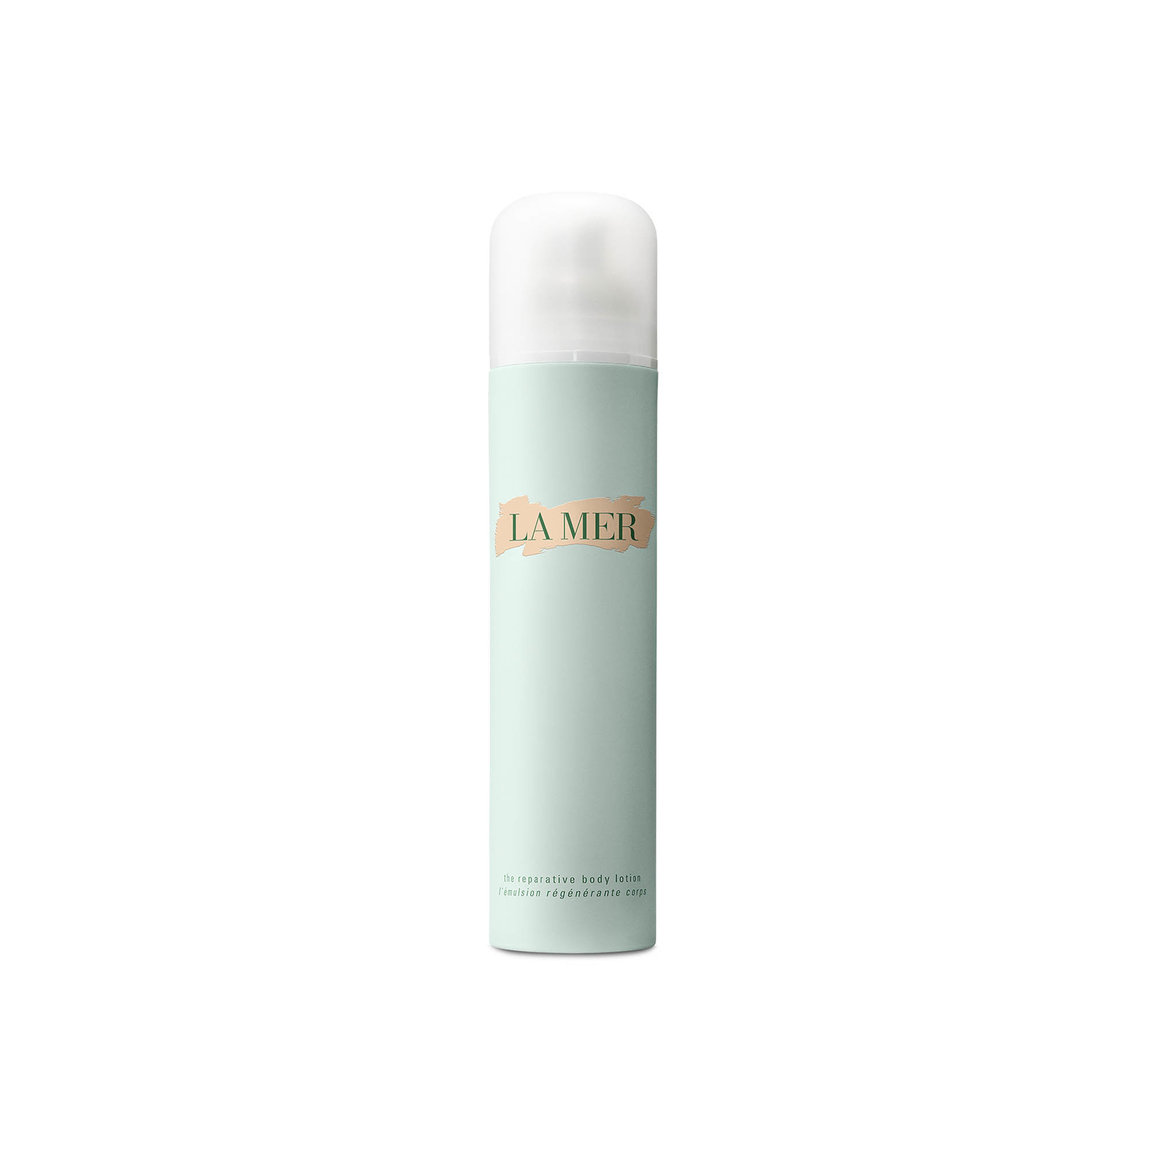 La Mer The Reparative Body Lotion product smear.